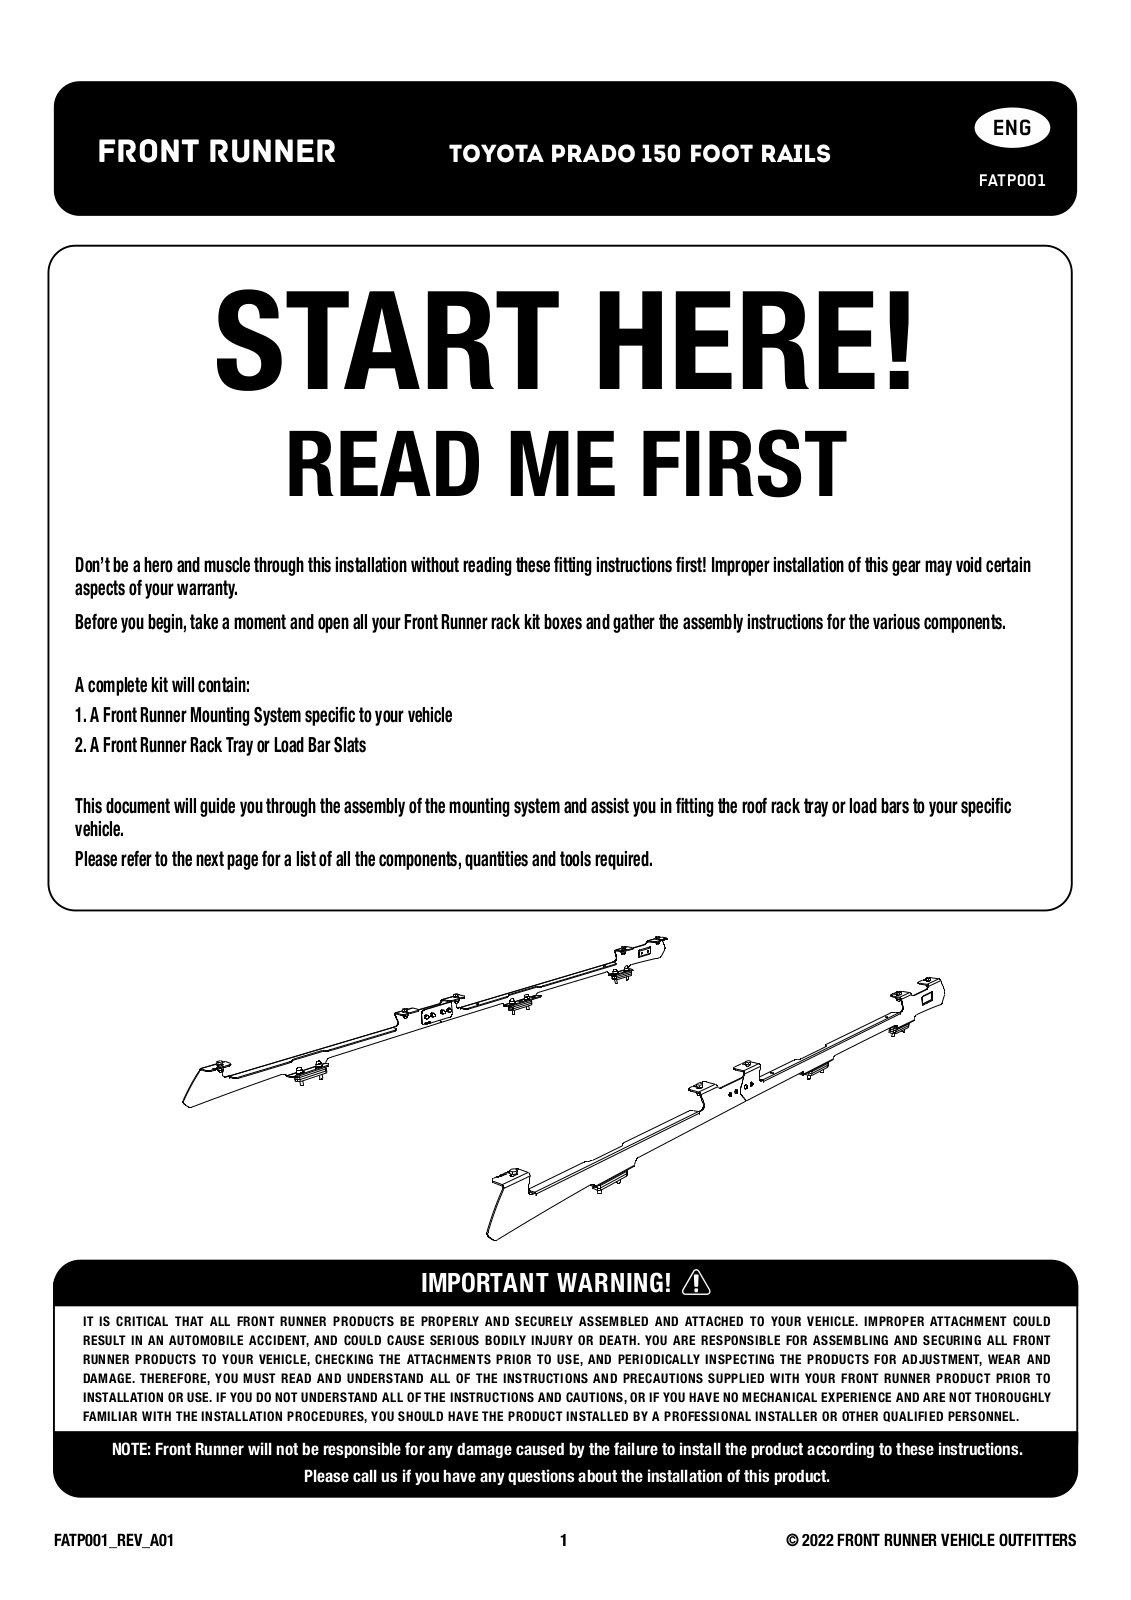 Installation instructions for FATP001